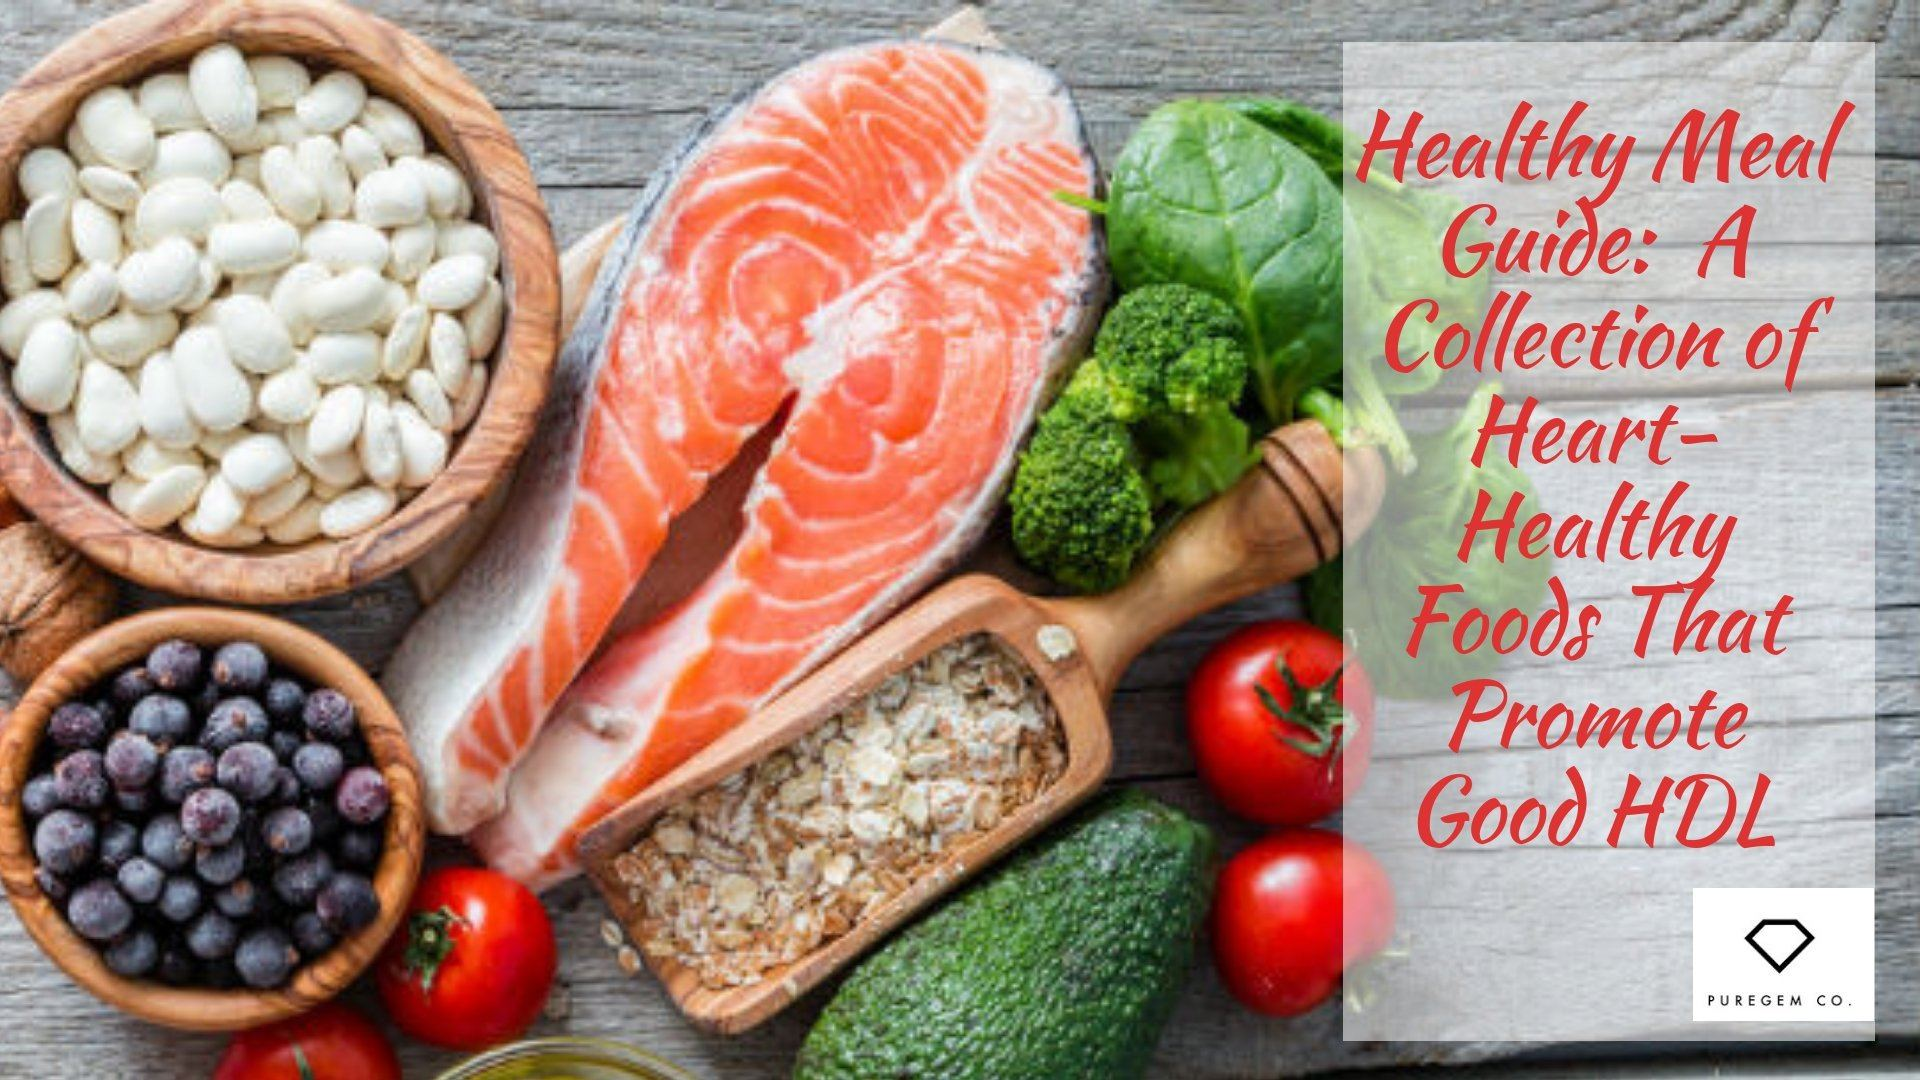 Healthy Meal Guide:  A Collection of Heart-Healthy Foods That Promote Good HDL